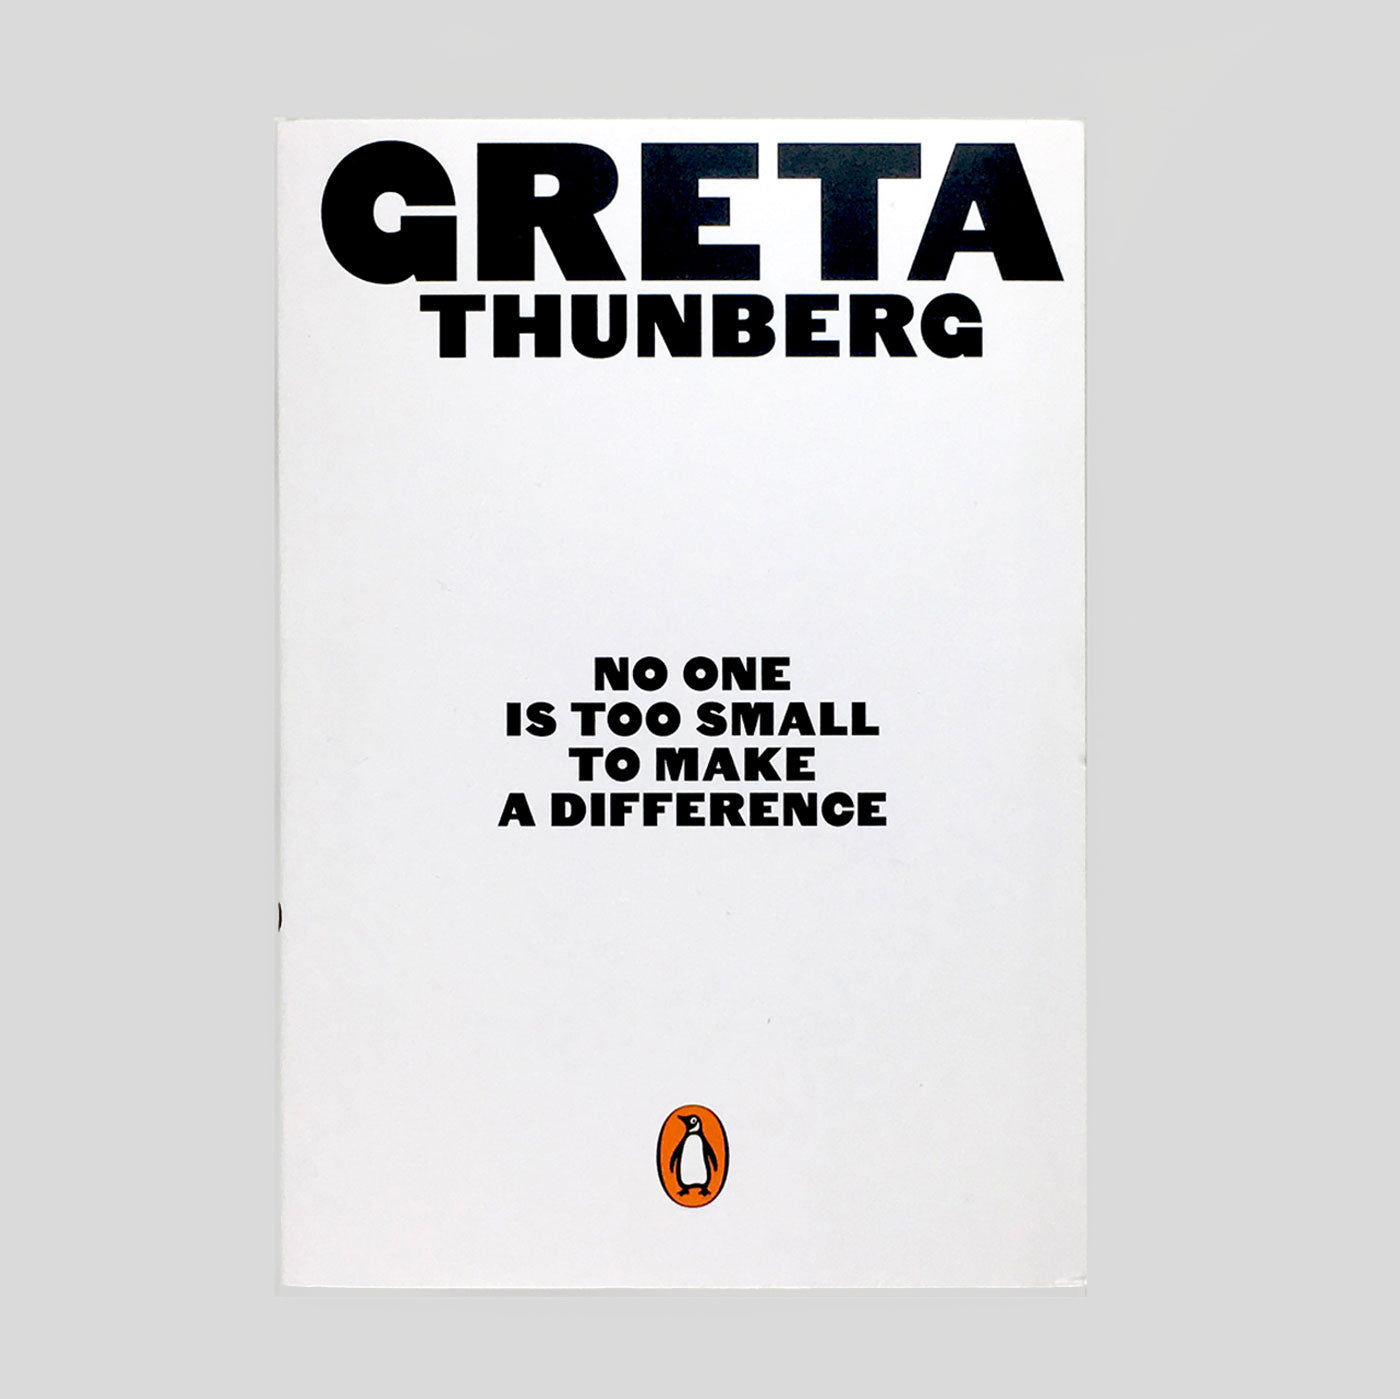 No One Is Too Small To Make A Difference by Greta Thunberg.